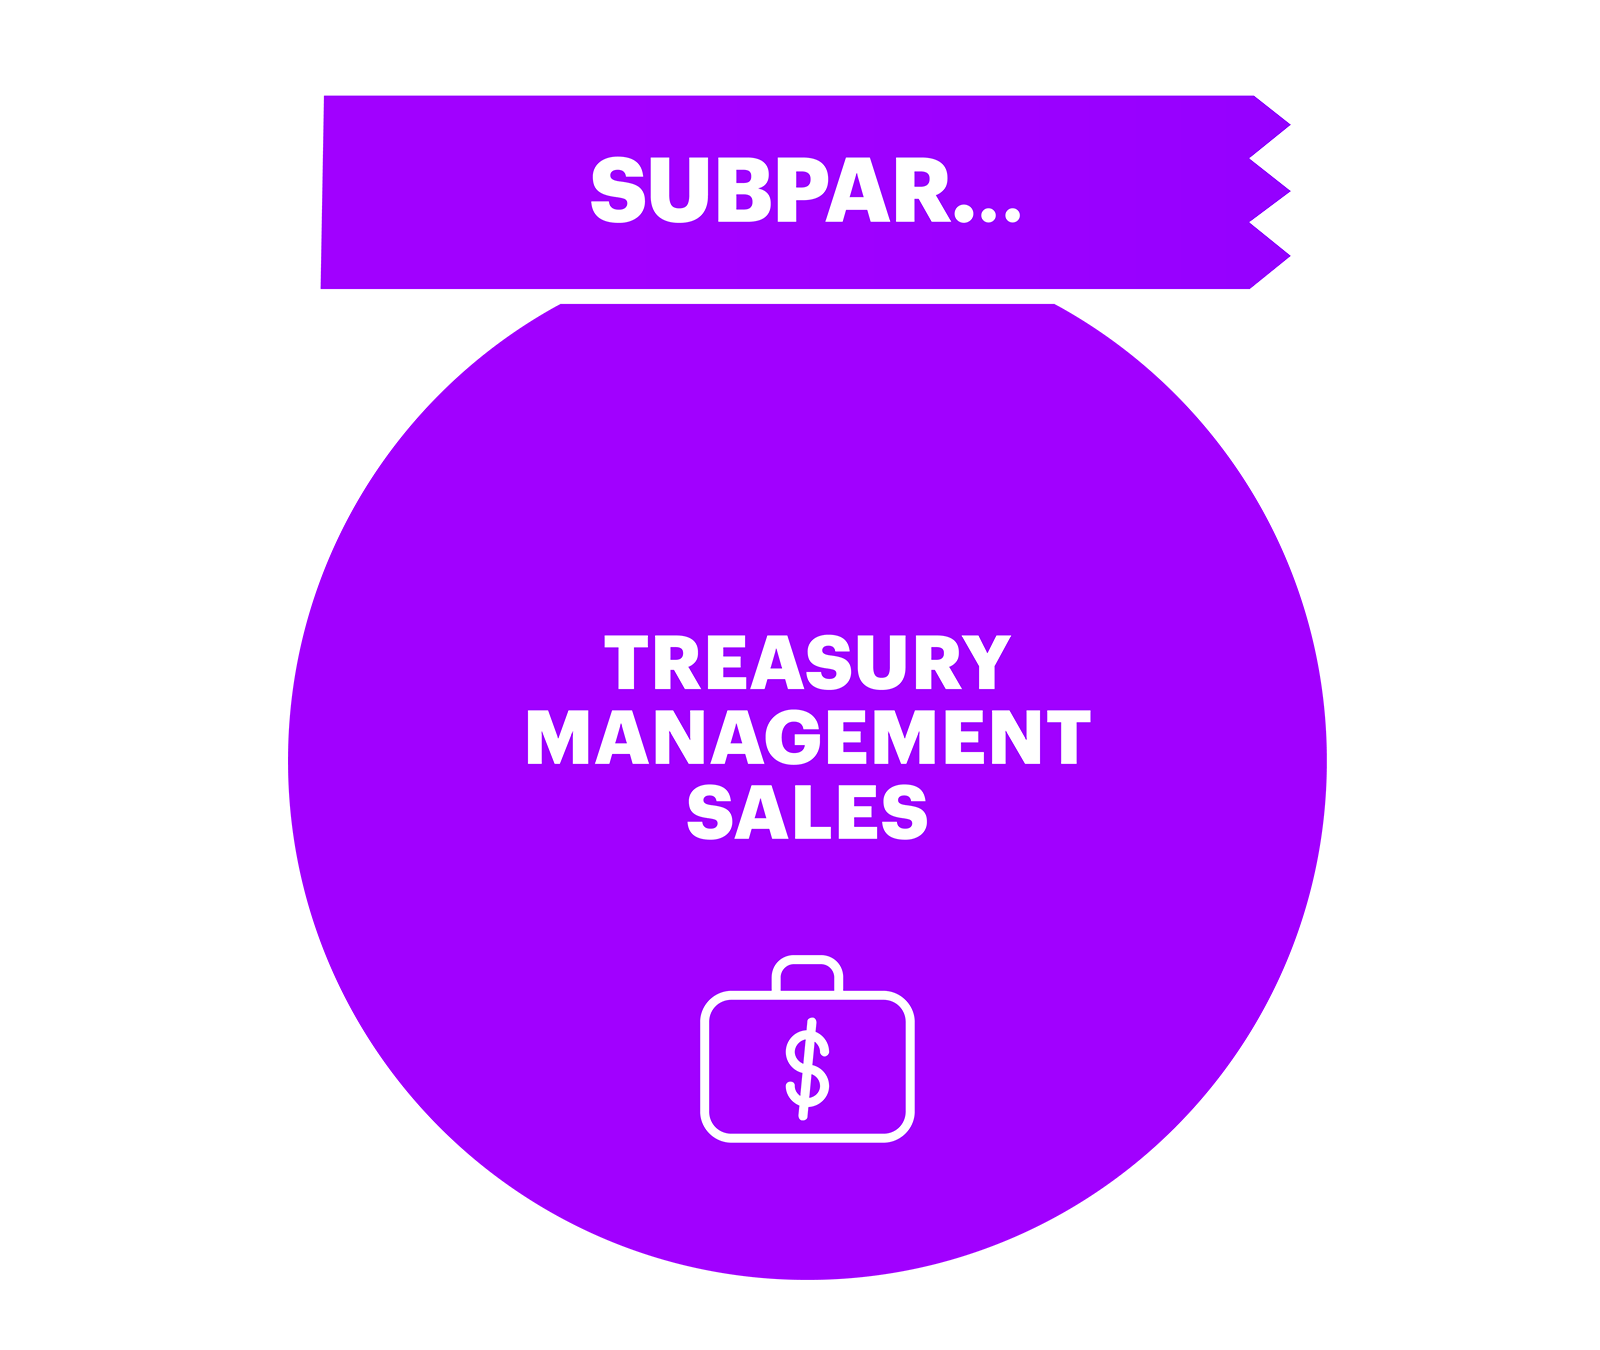 TREASURY MANAGEMENT SALES